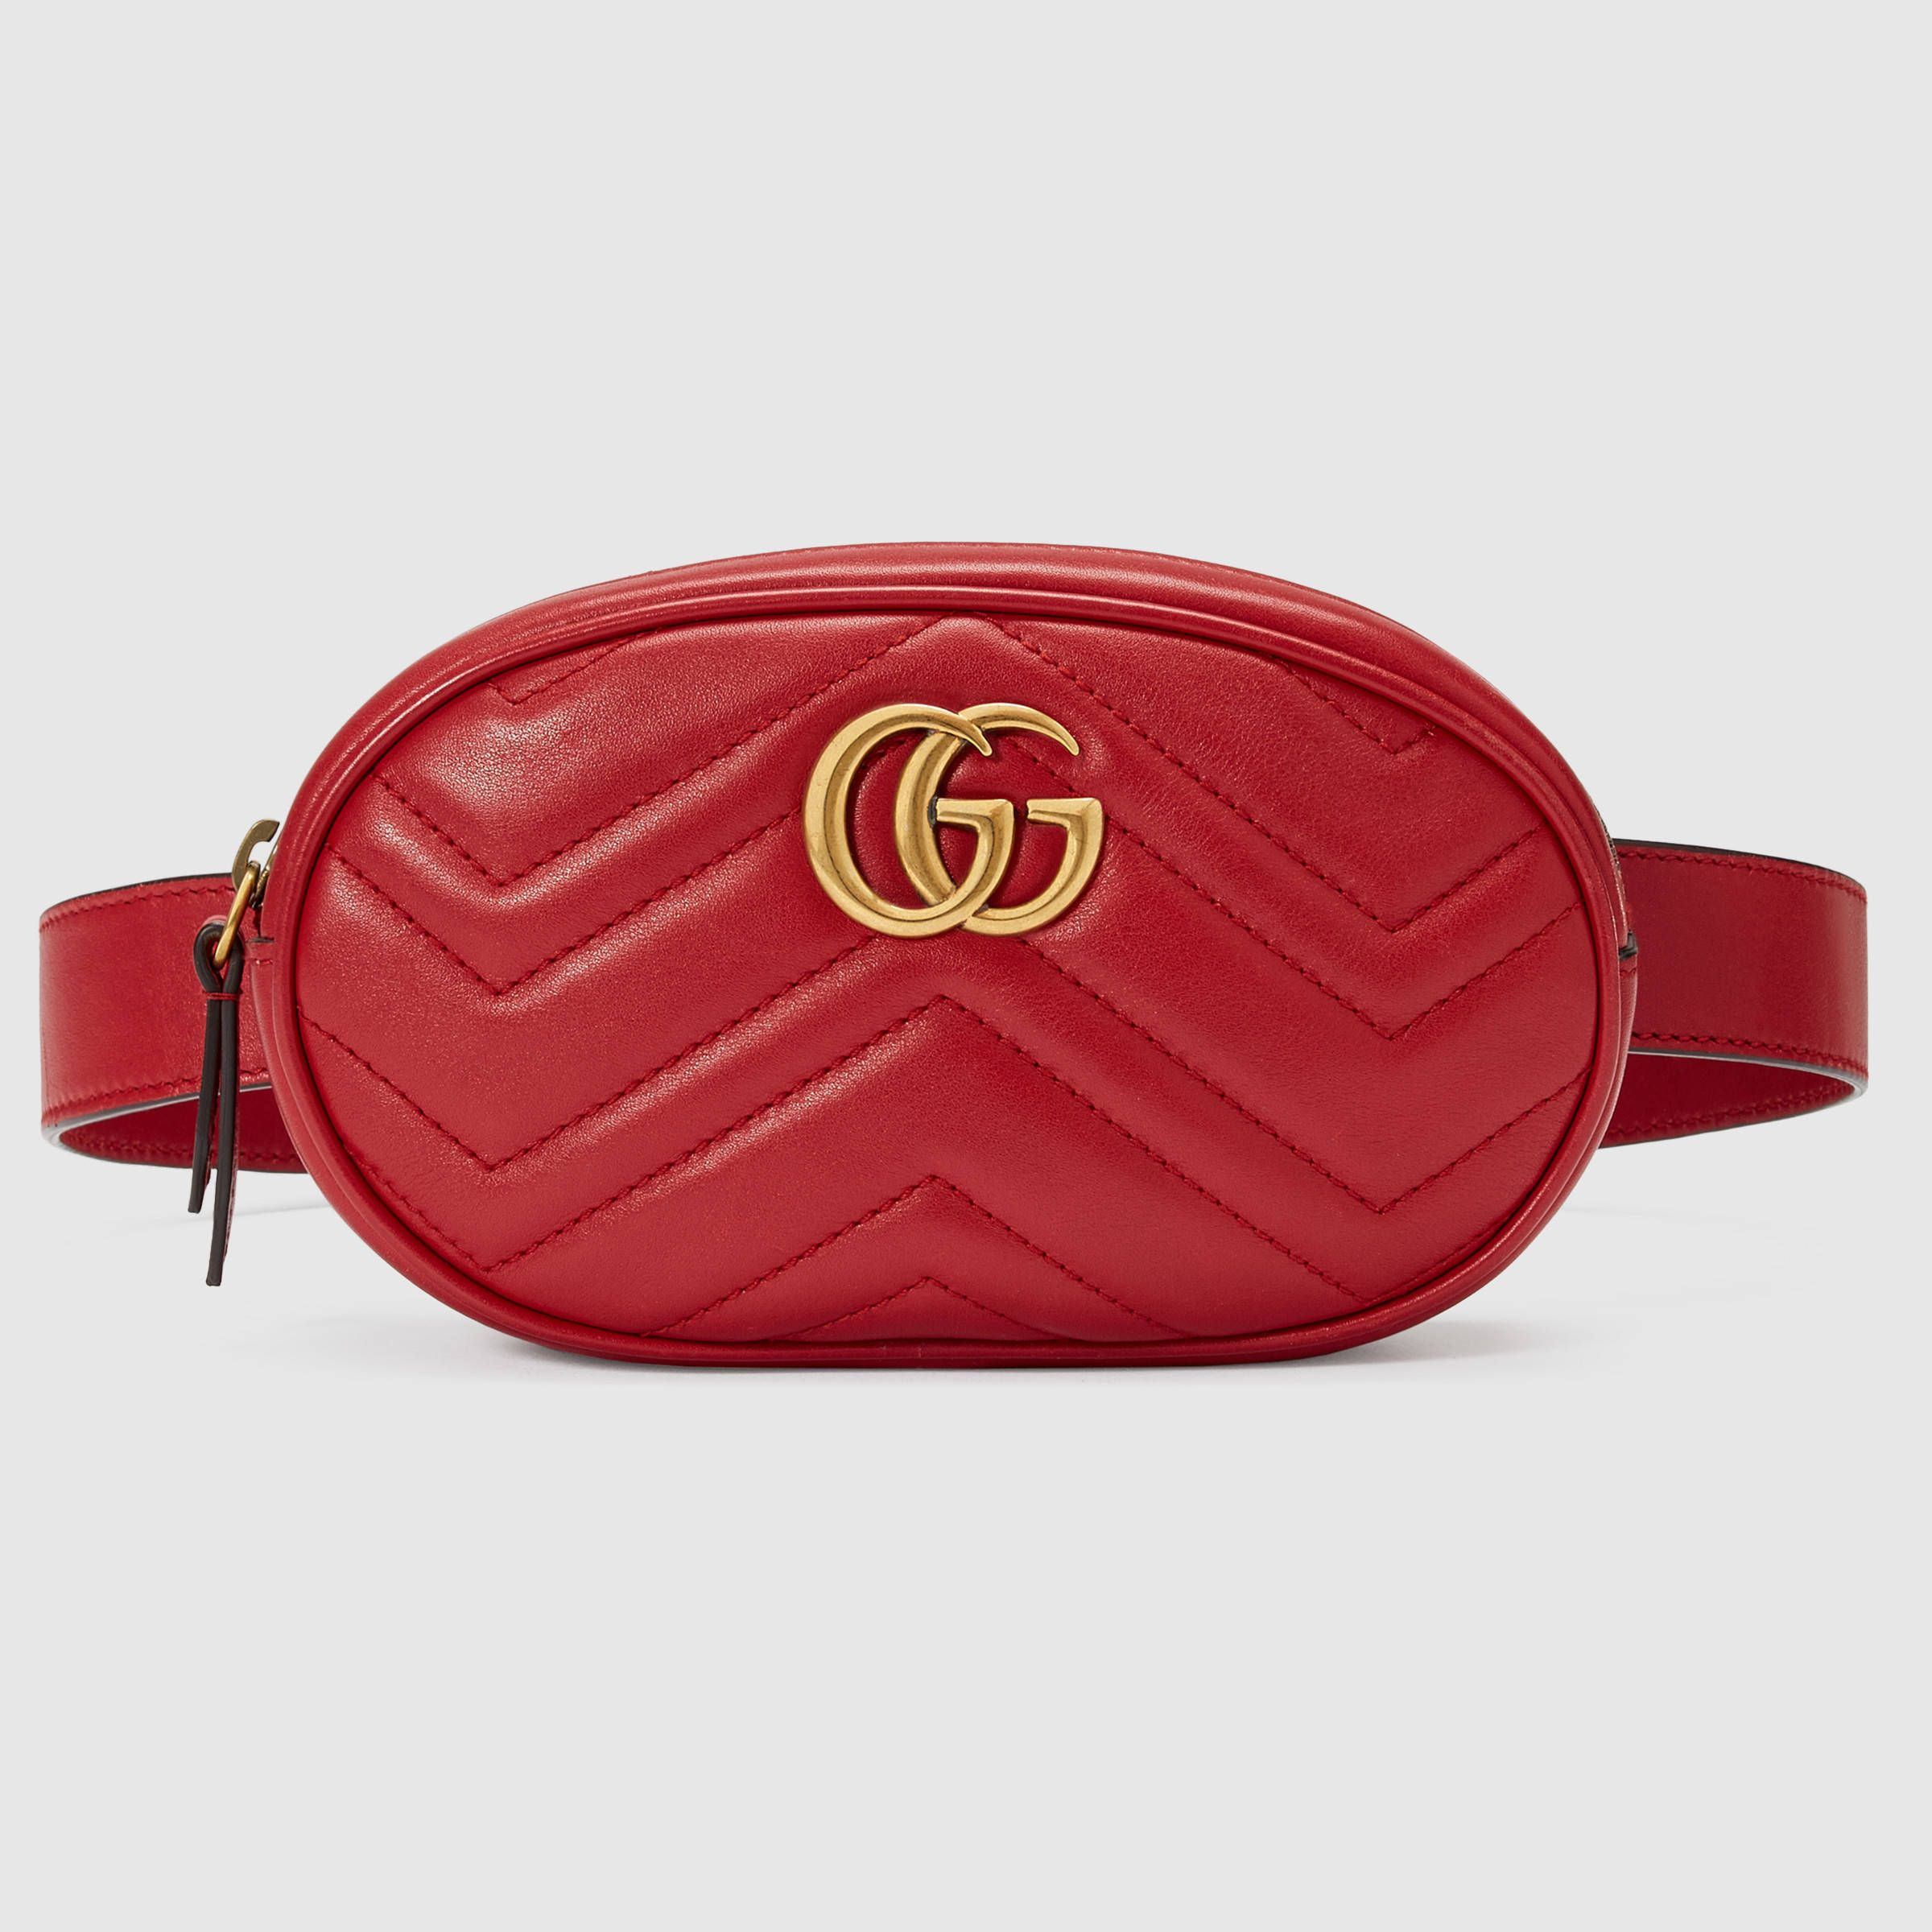 8d2b1b539c8 GG Marmont matelassé leather belt bag in 2019 | Accessories ...